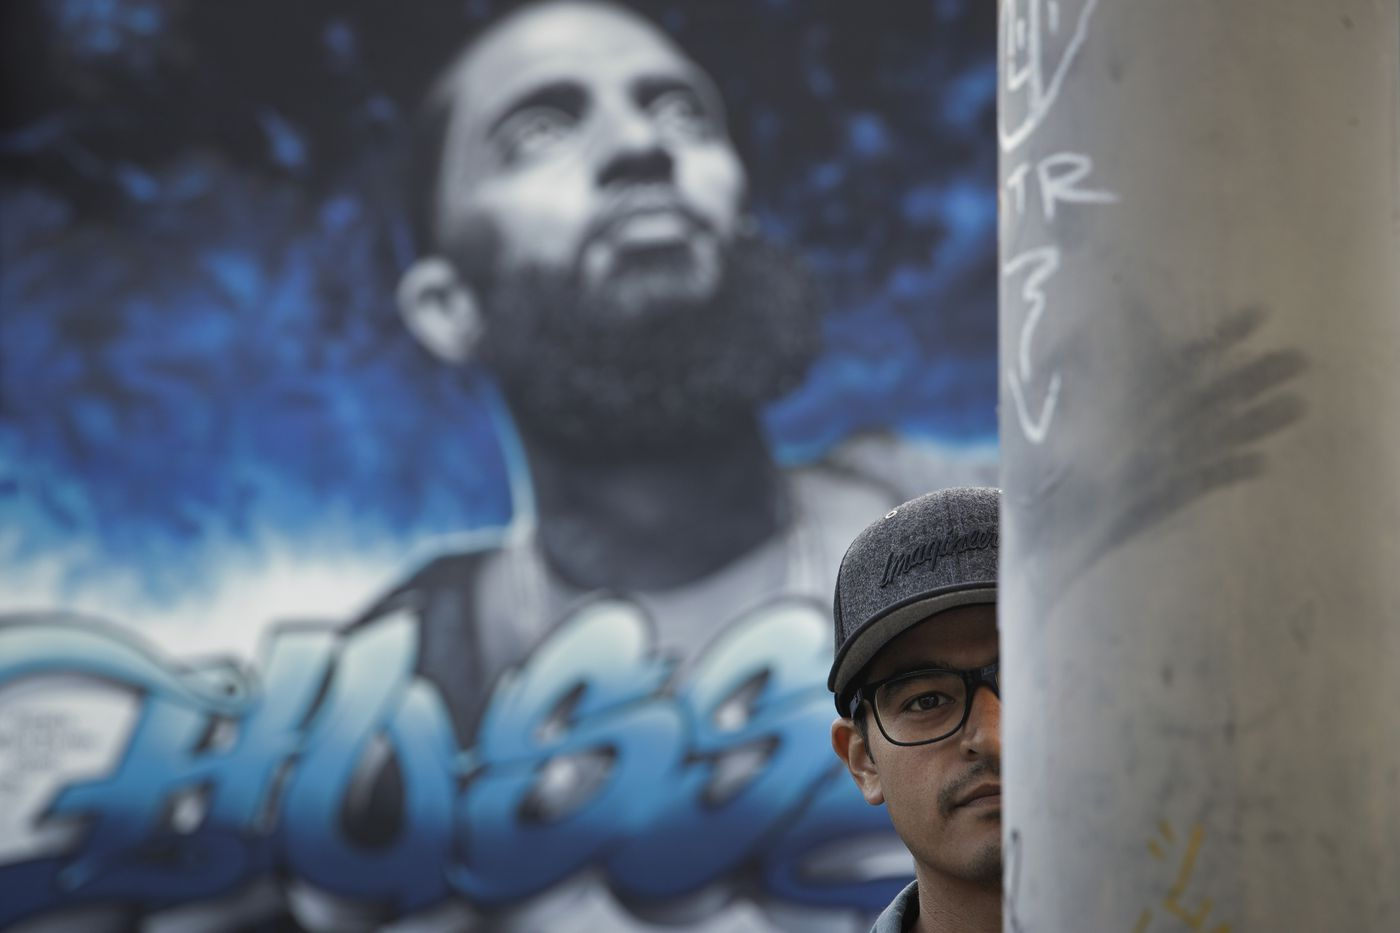 Nipsey Hussle murals 'solidifying' his legacy - Chicago Sun